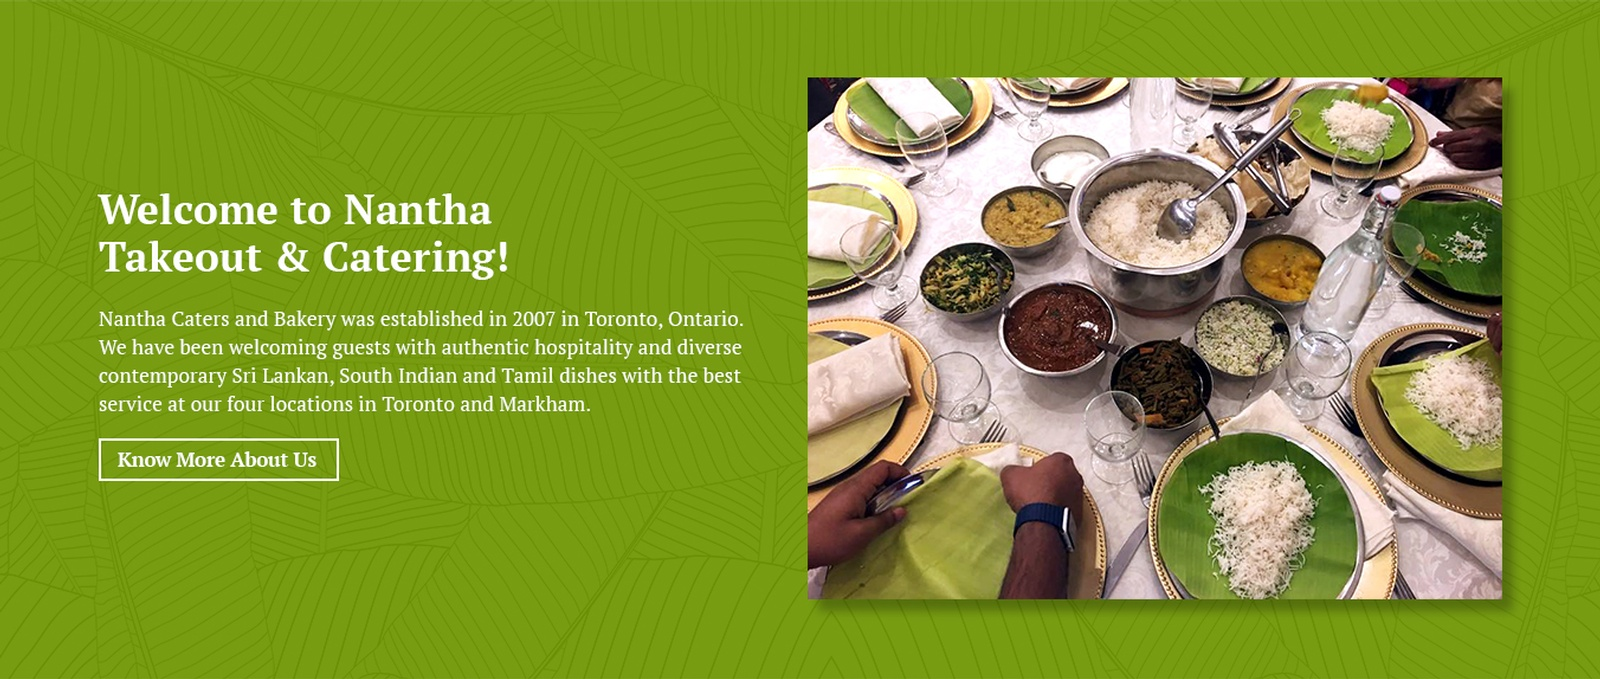 Welcome to Nantha Takeout and Catering - South Indian Food Toronto by Nantha Caters Inc